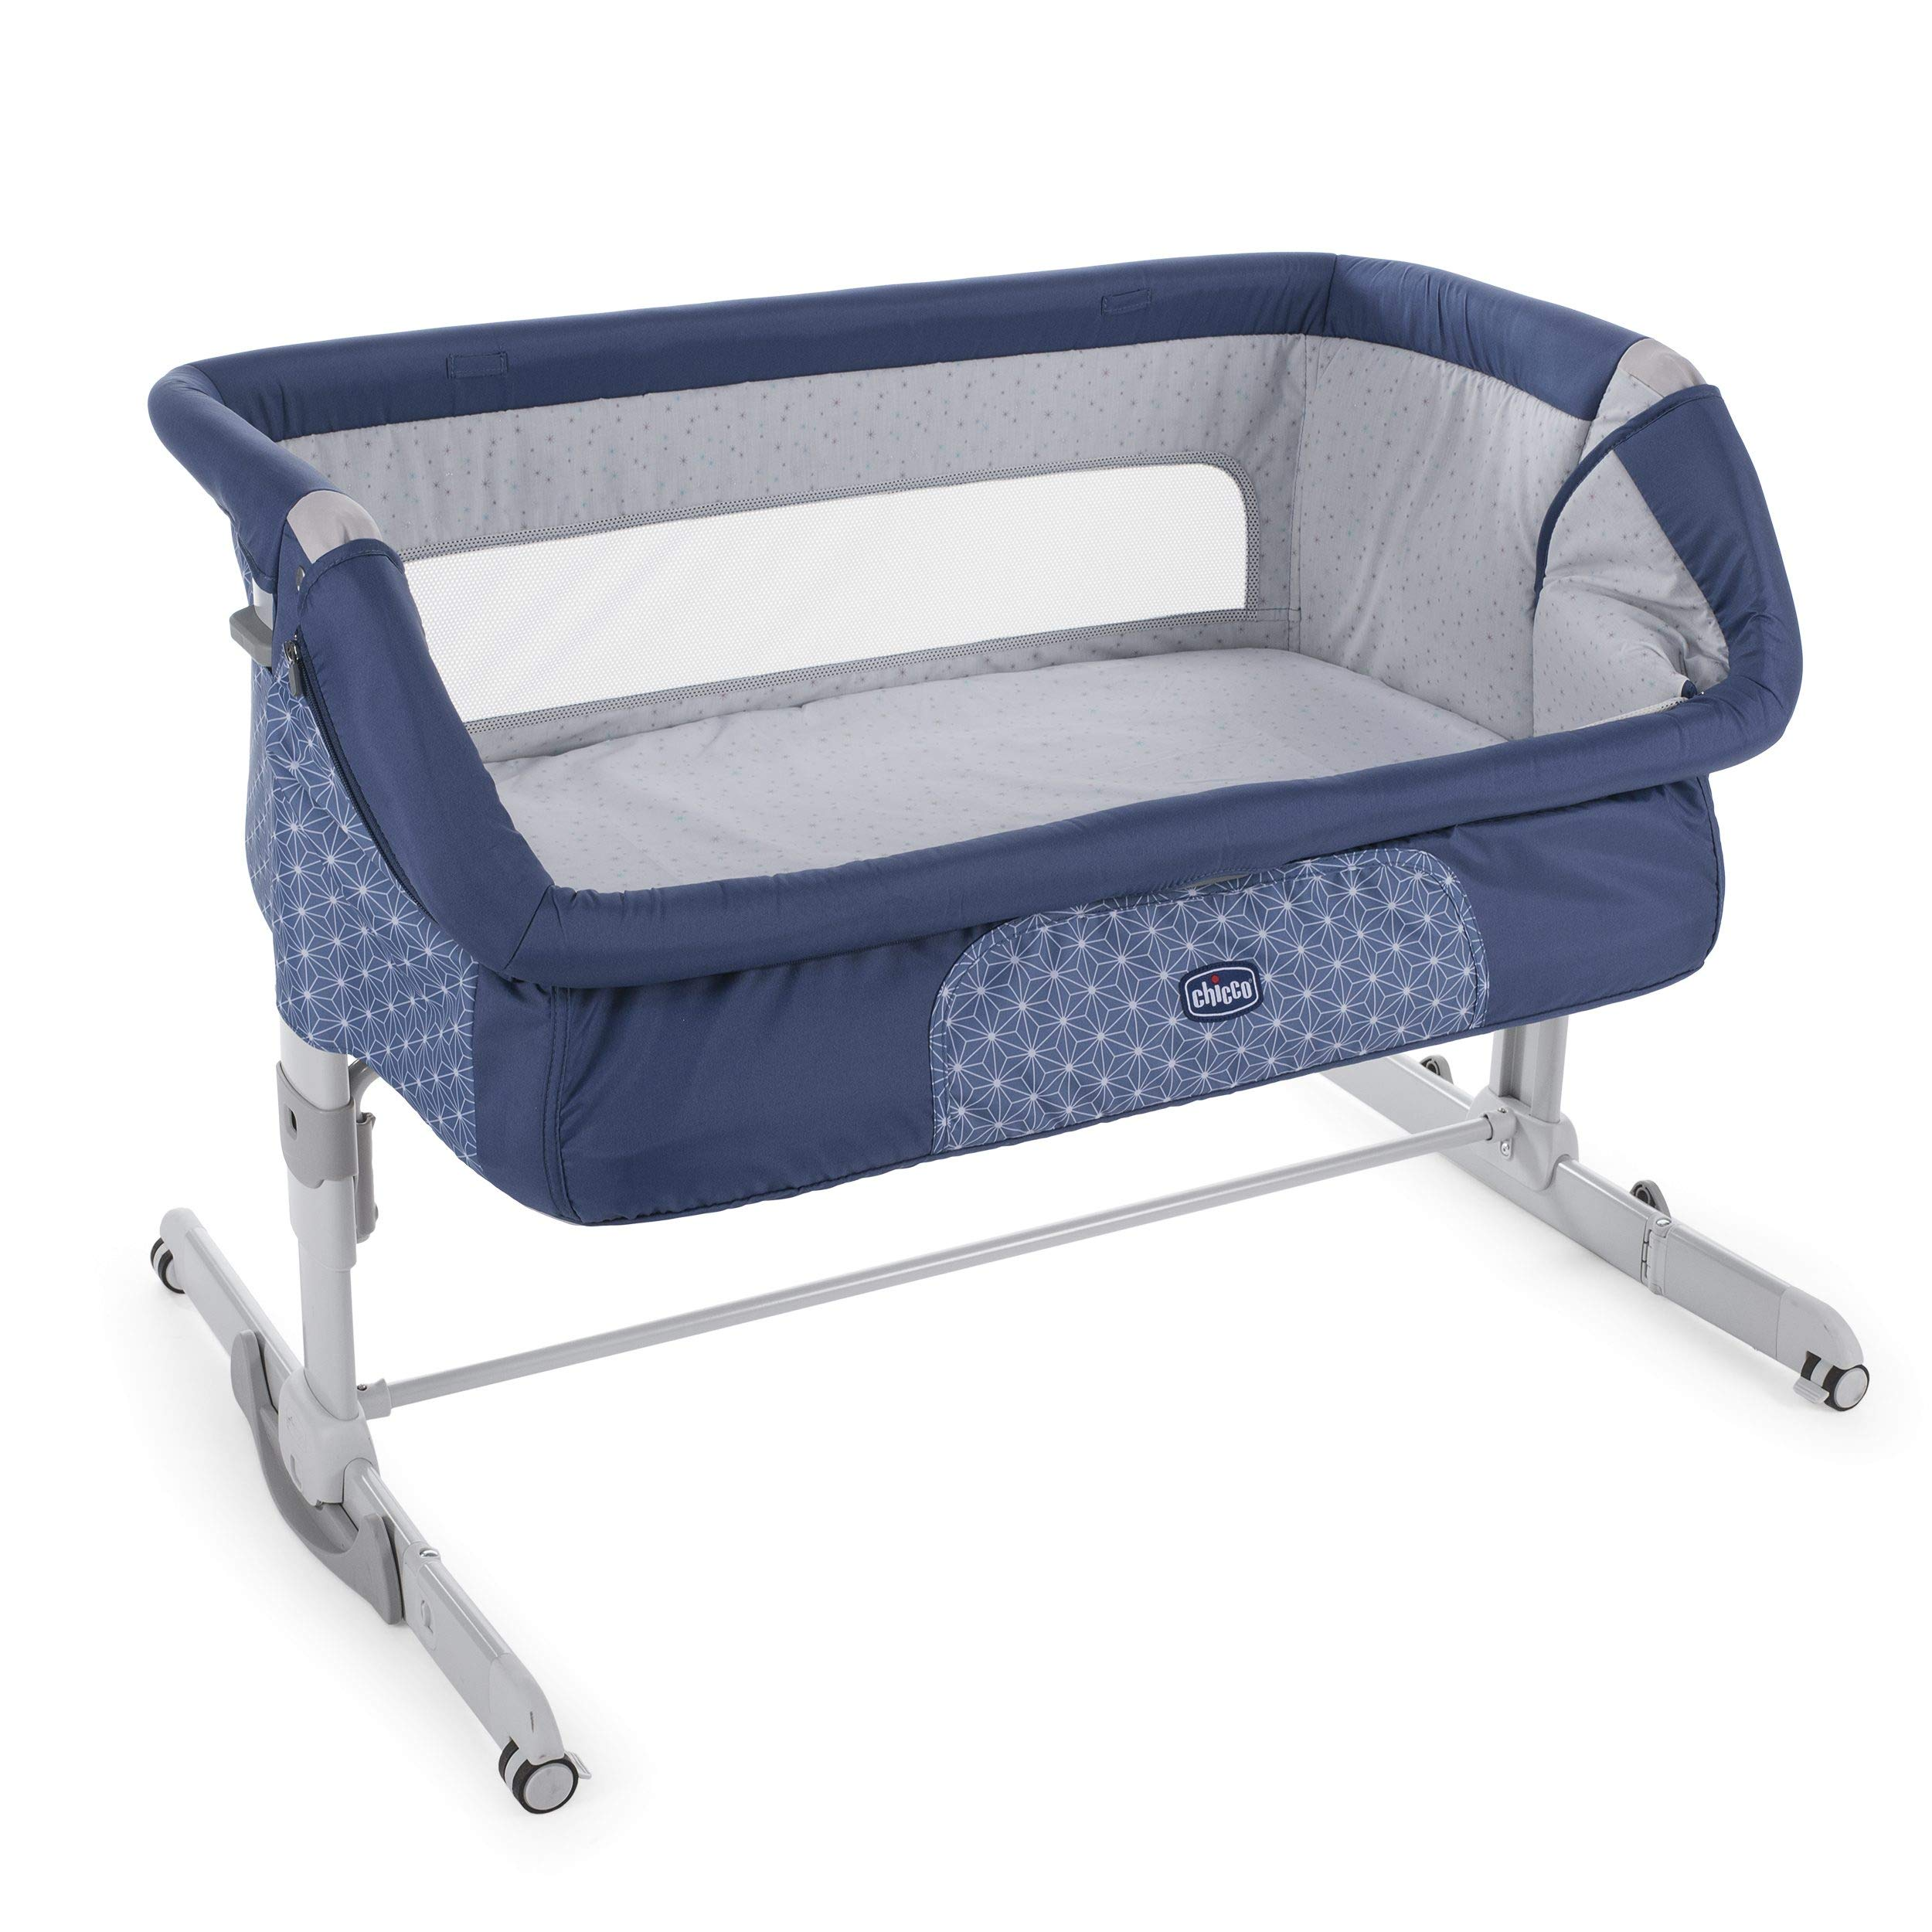 CHICCO - Next 2 Me Dream, Berceau Cododo, Navy product image